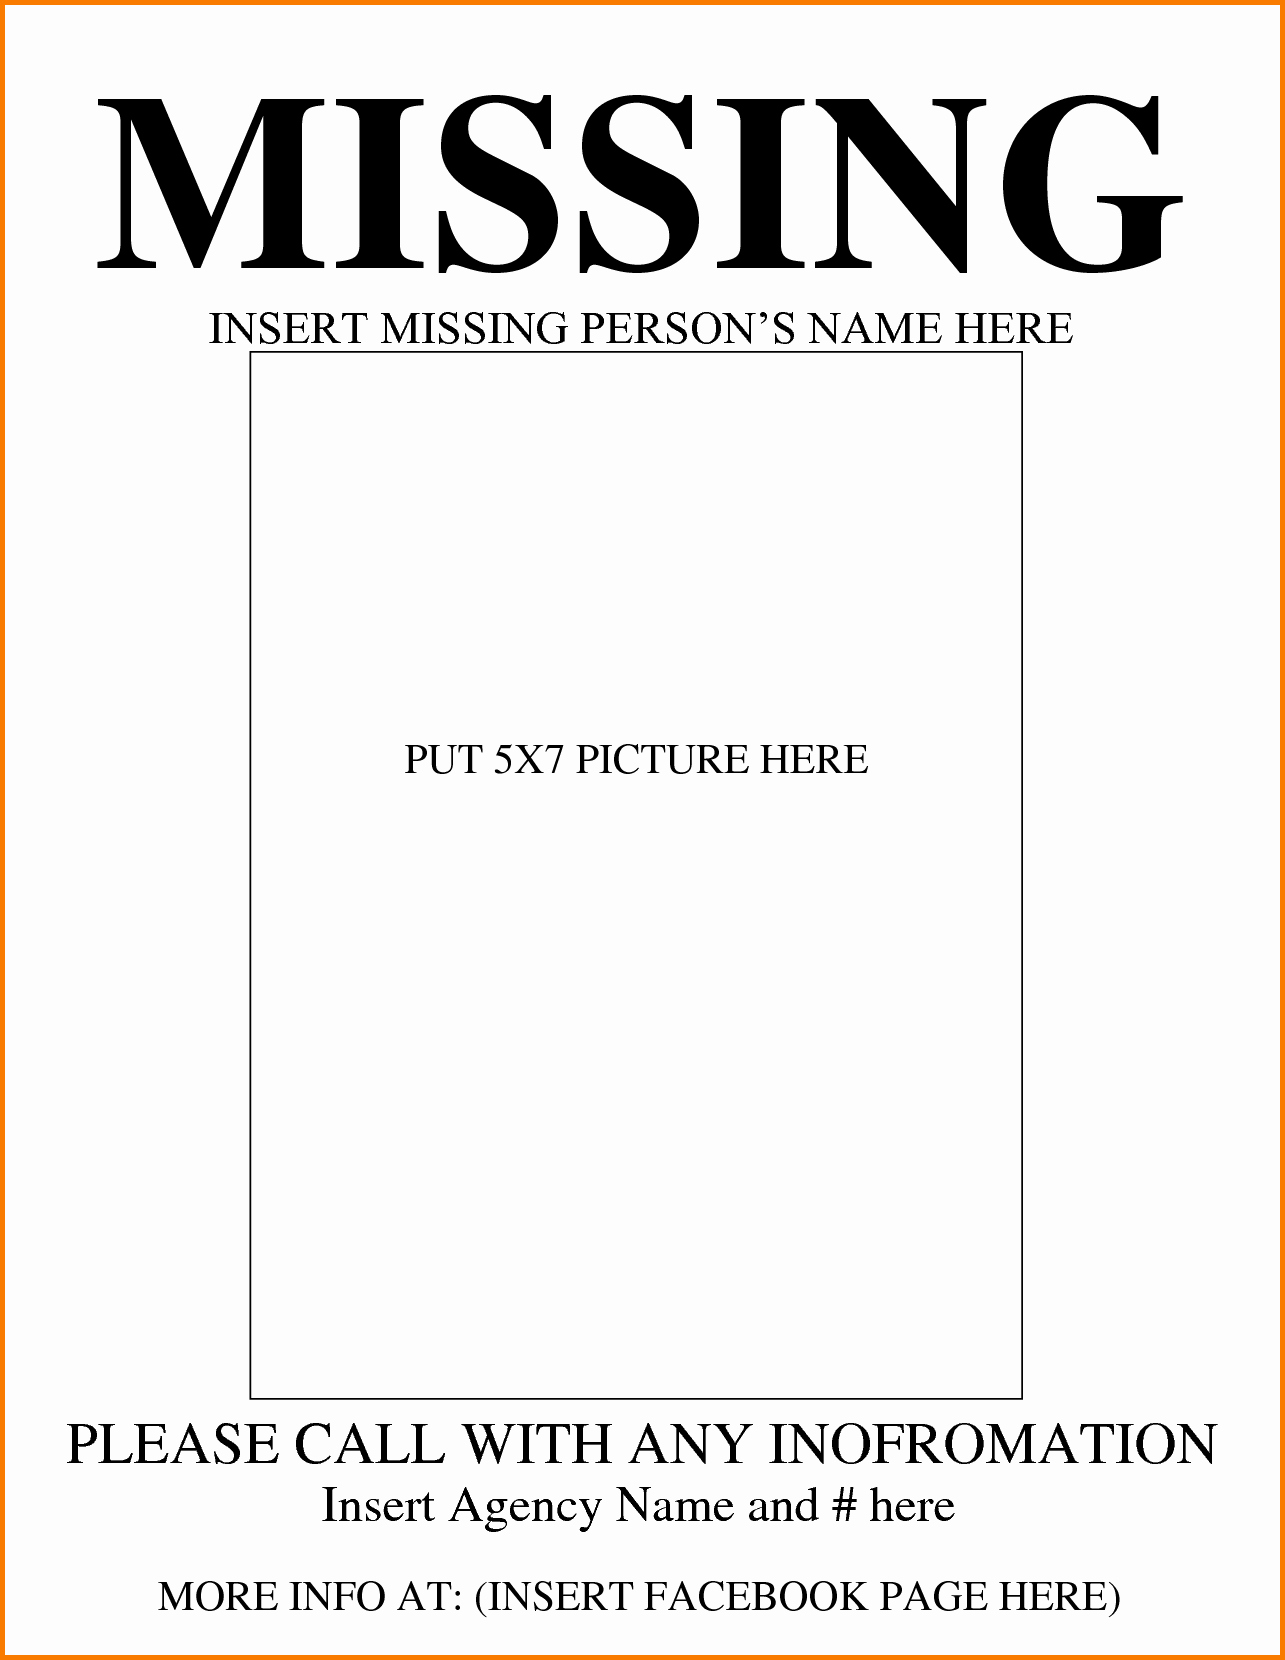 Lost and Found Sign Template Best Of Missing Person Template